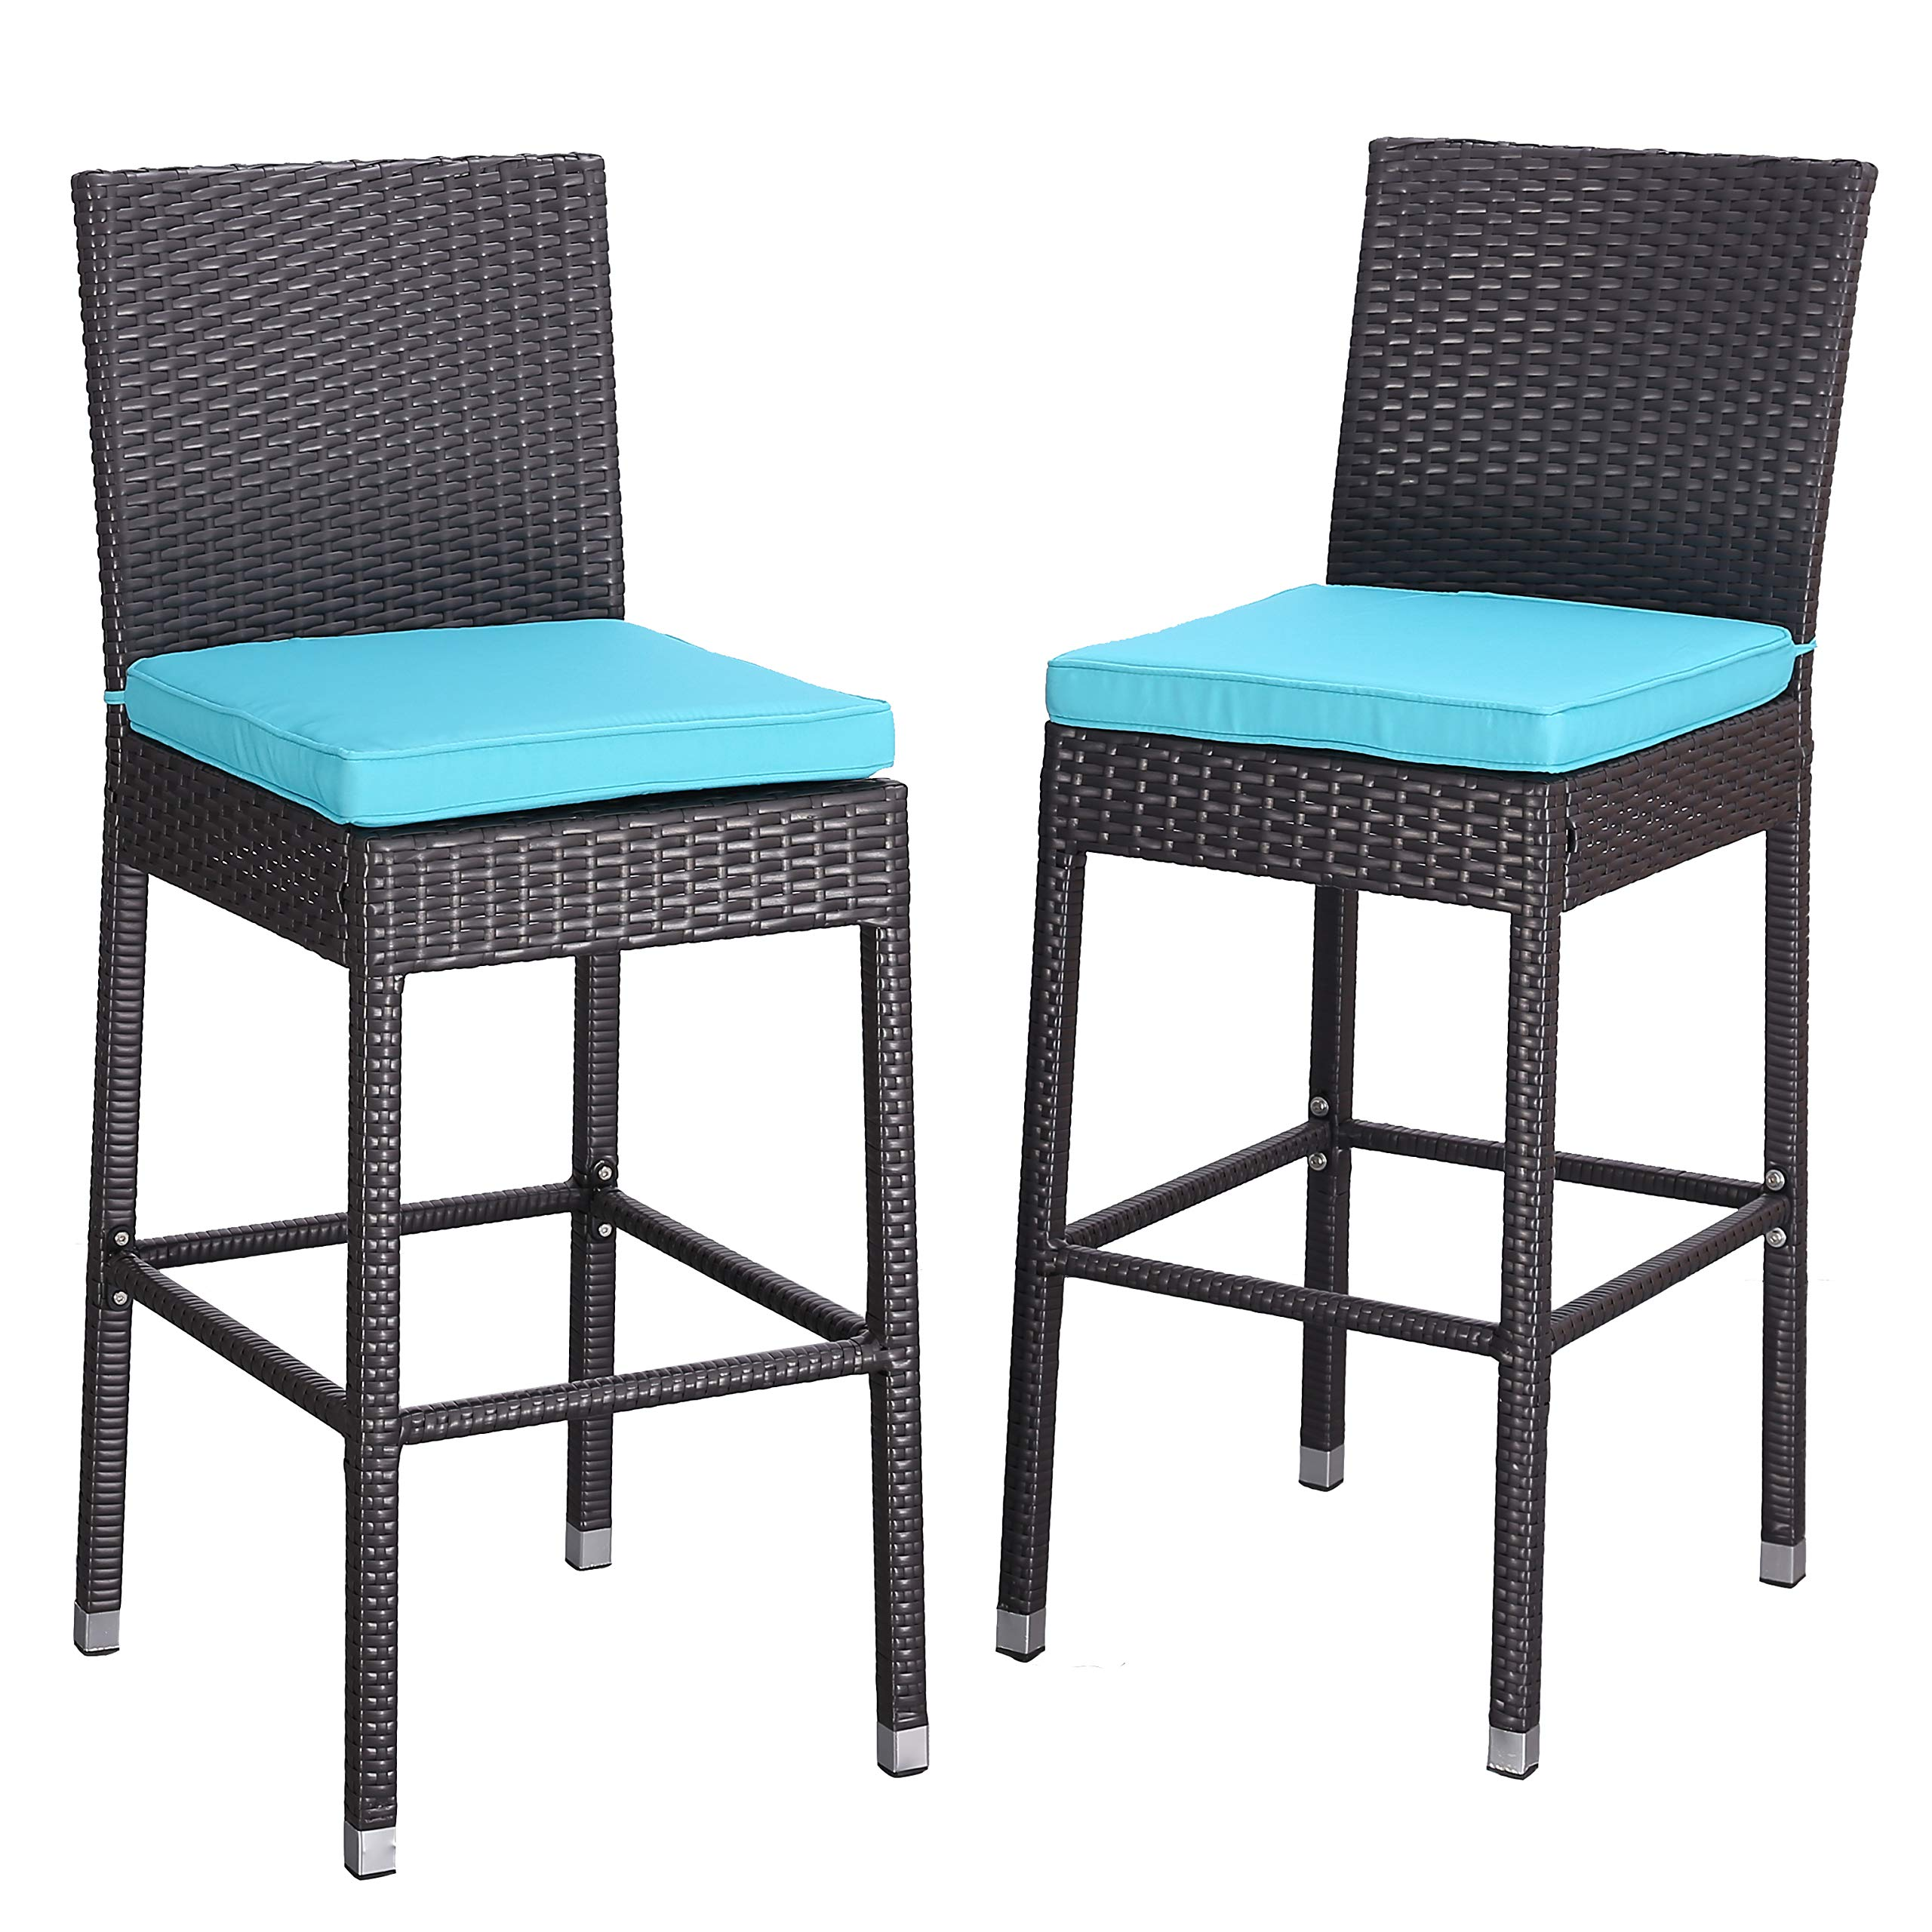 Do4U Set of 2 Patio Bar Stools All-Weather Wicker Outdoor Furniture Chair, Bar Chairs with Beige Cushions & Footrest   Garden Pool Lawn Backyard   Steel Frame  Barstools (985-EXP-TRQ)